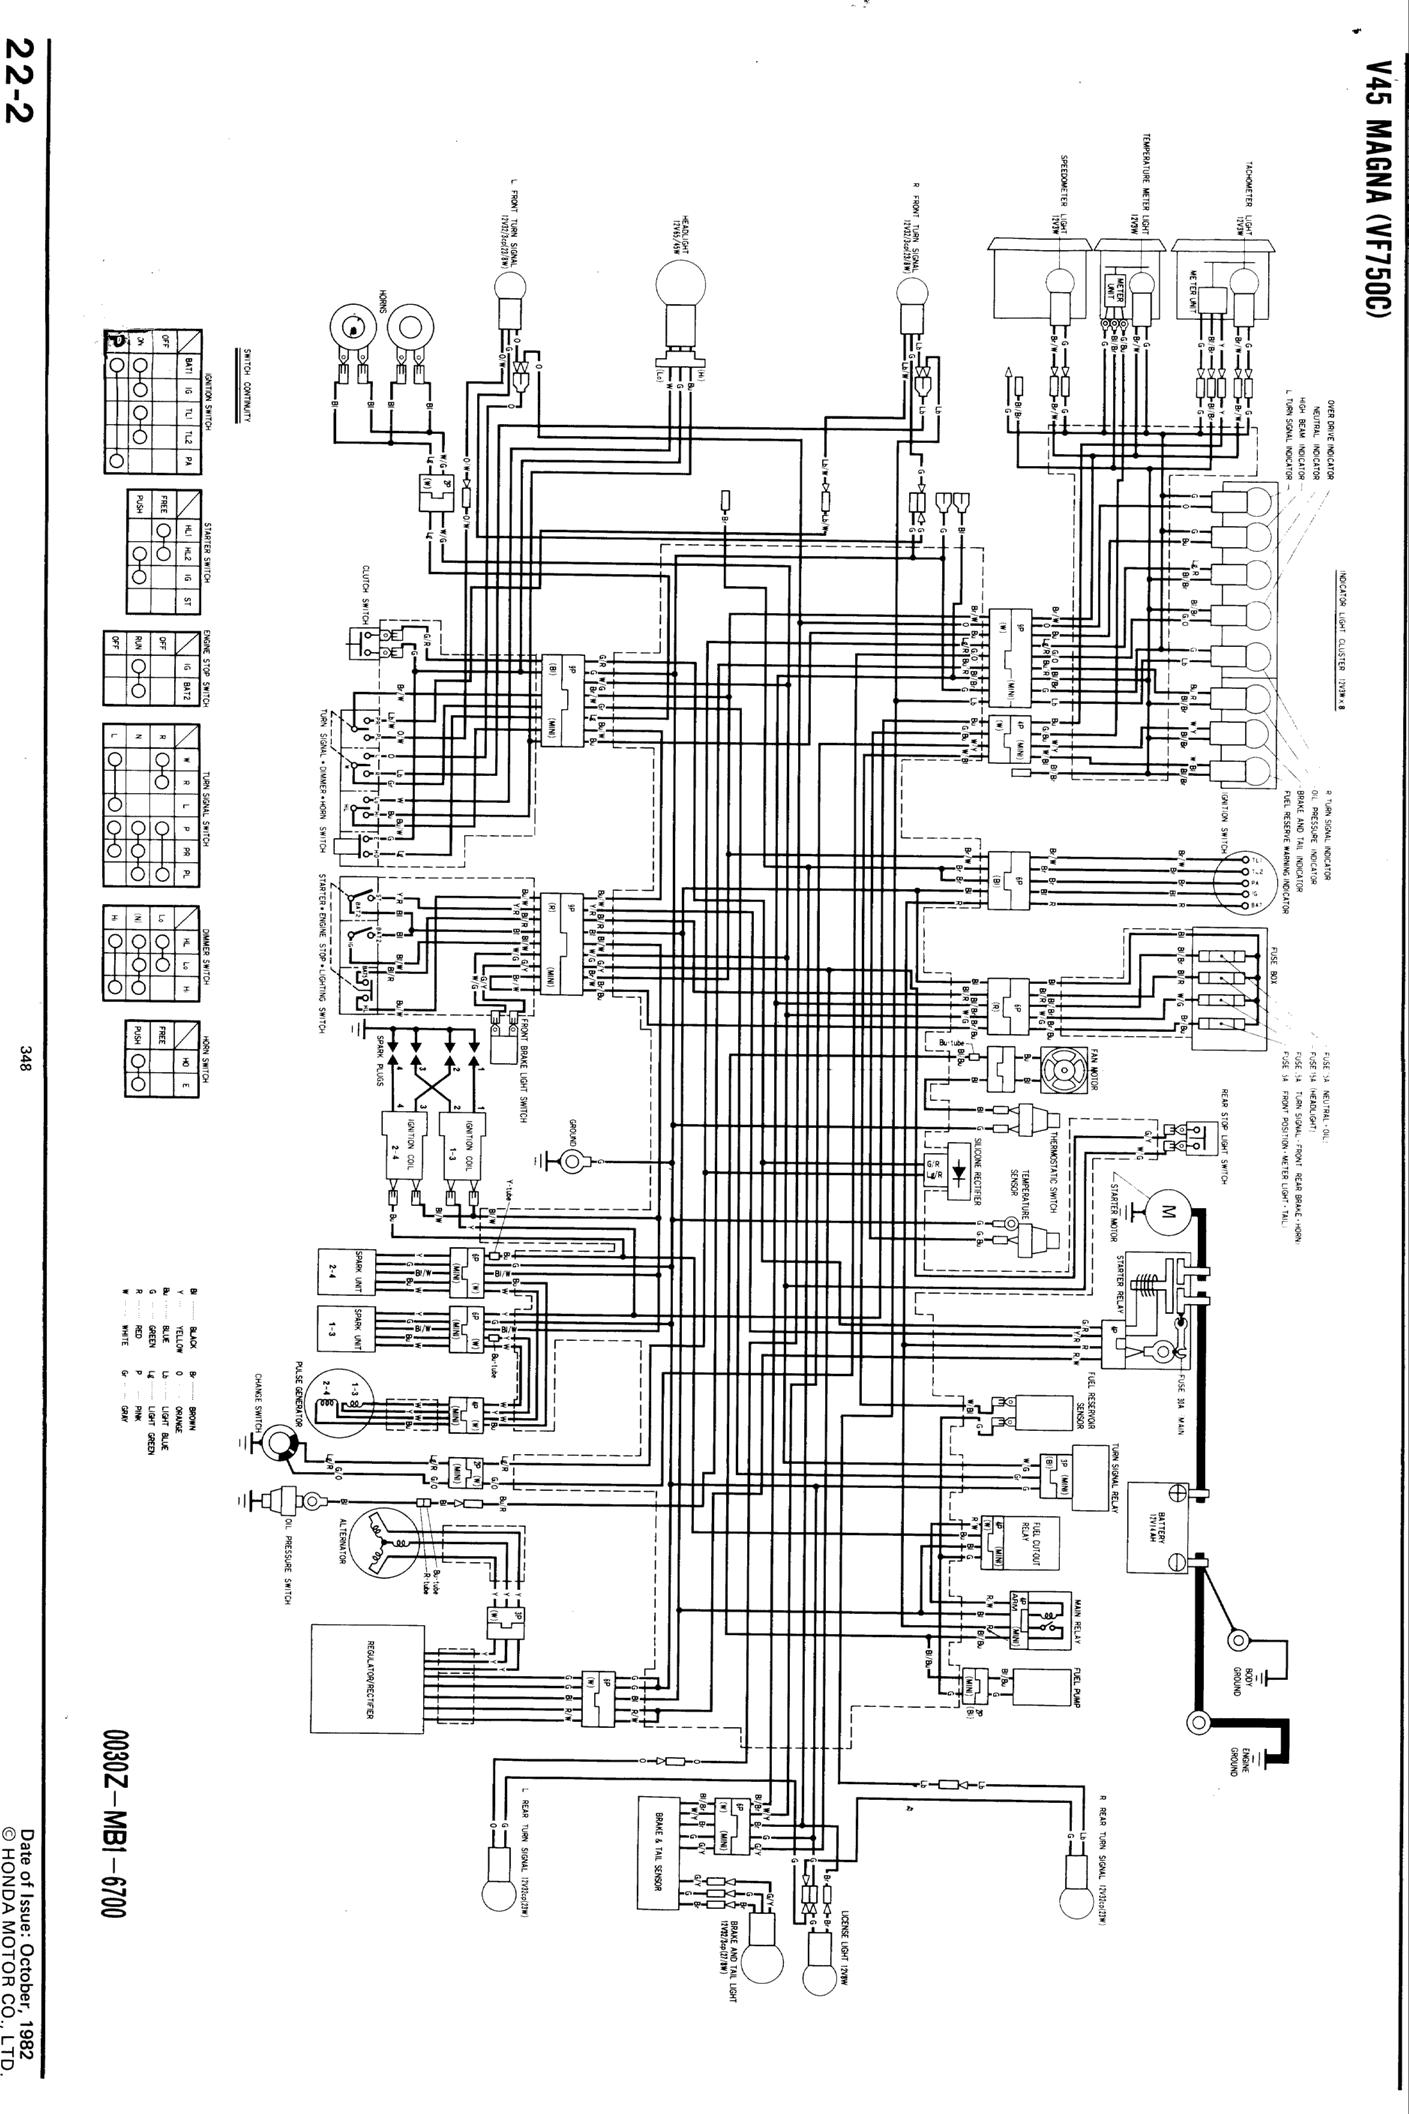 Chapter22 02 MagnaWiringDiagramsmall 1999 vt1100c wiring diagram data wiring diagram